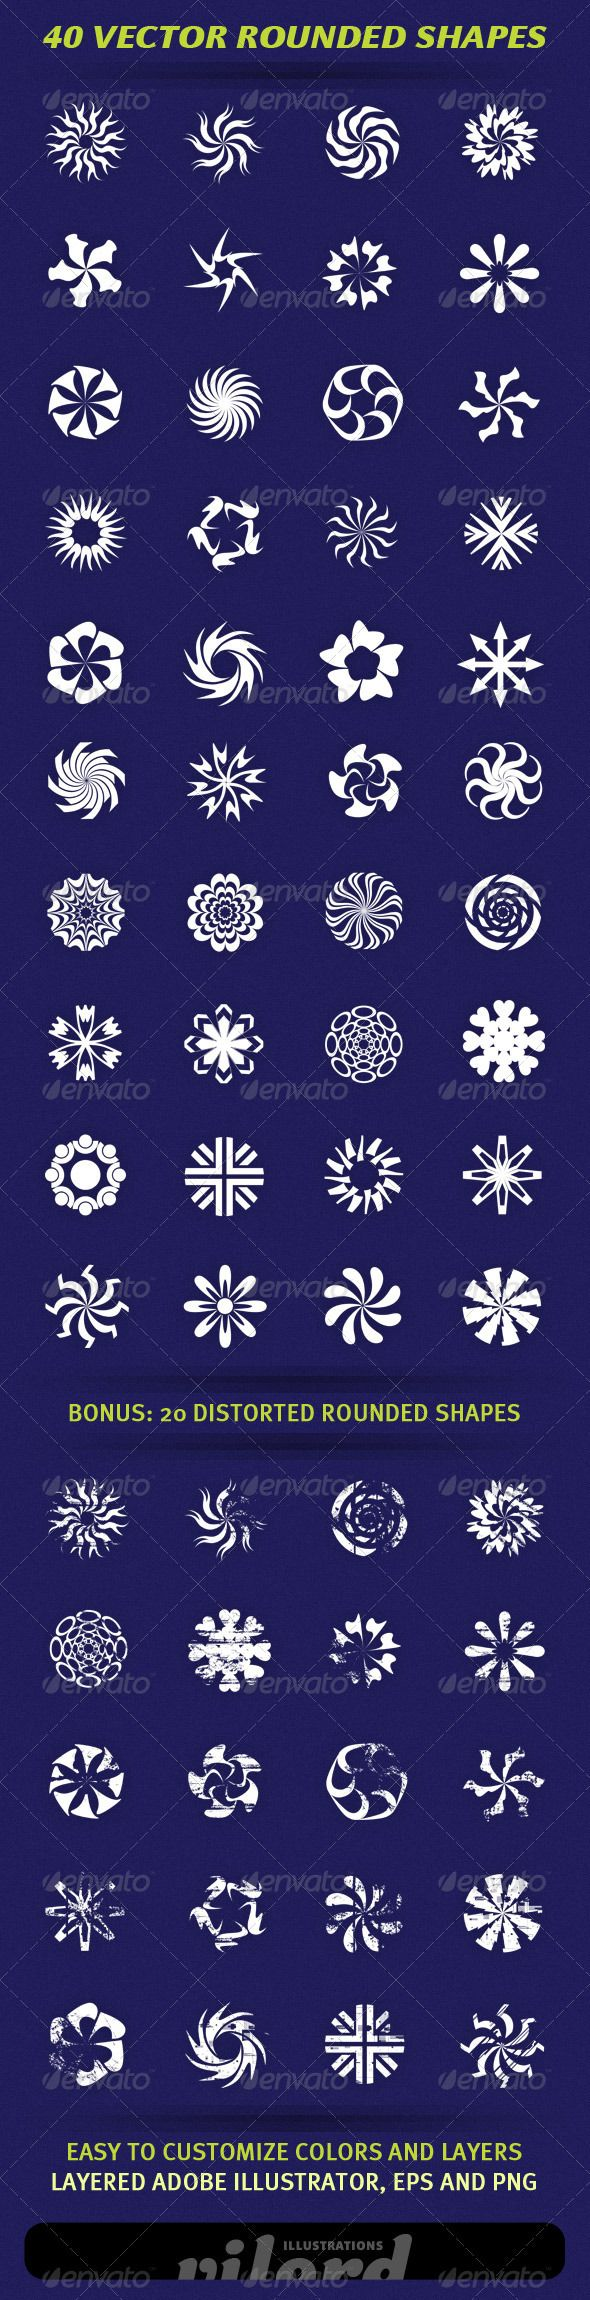 40 Vector Rounded Shapes